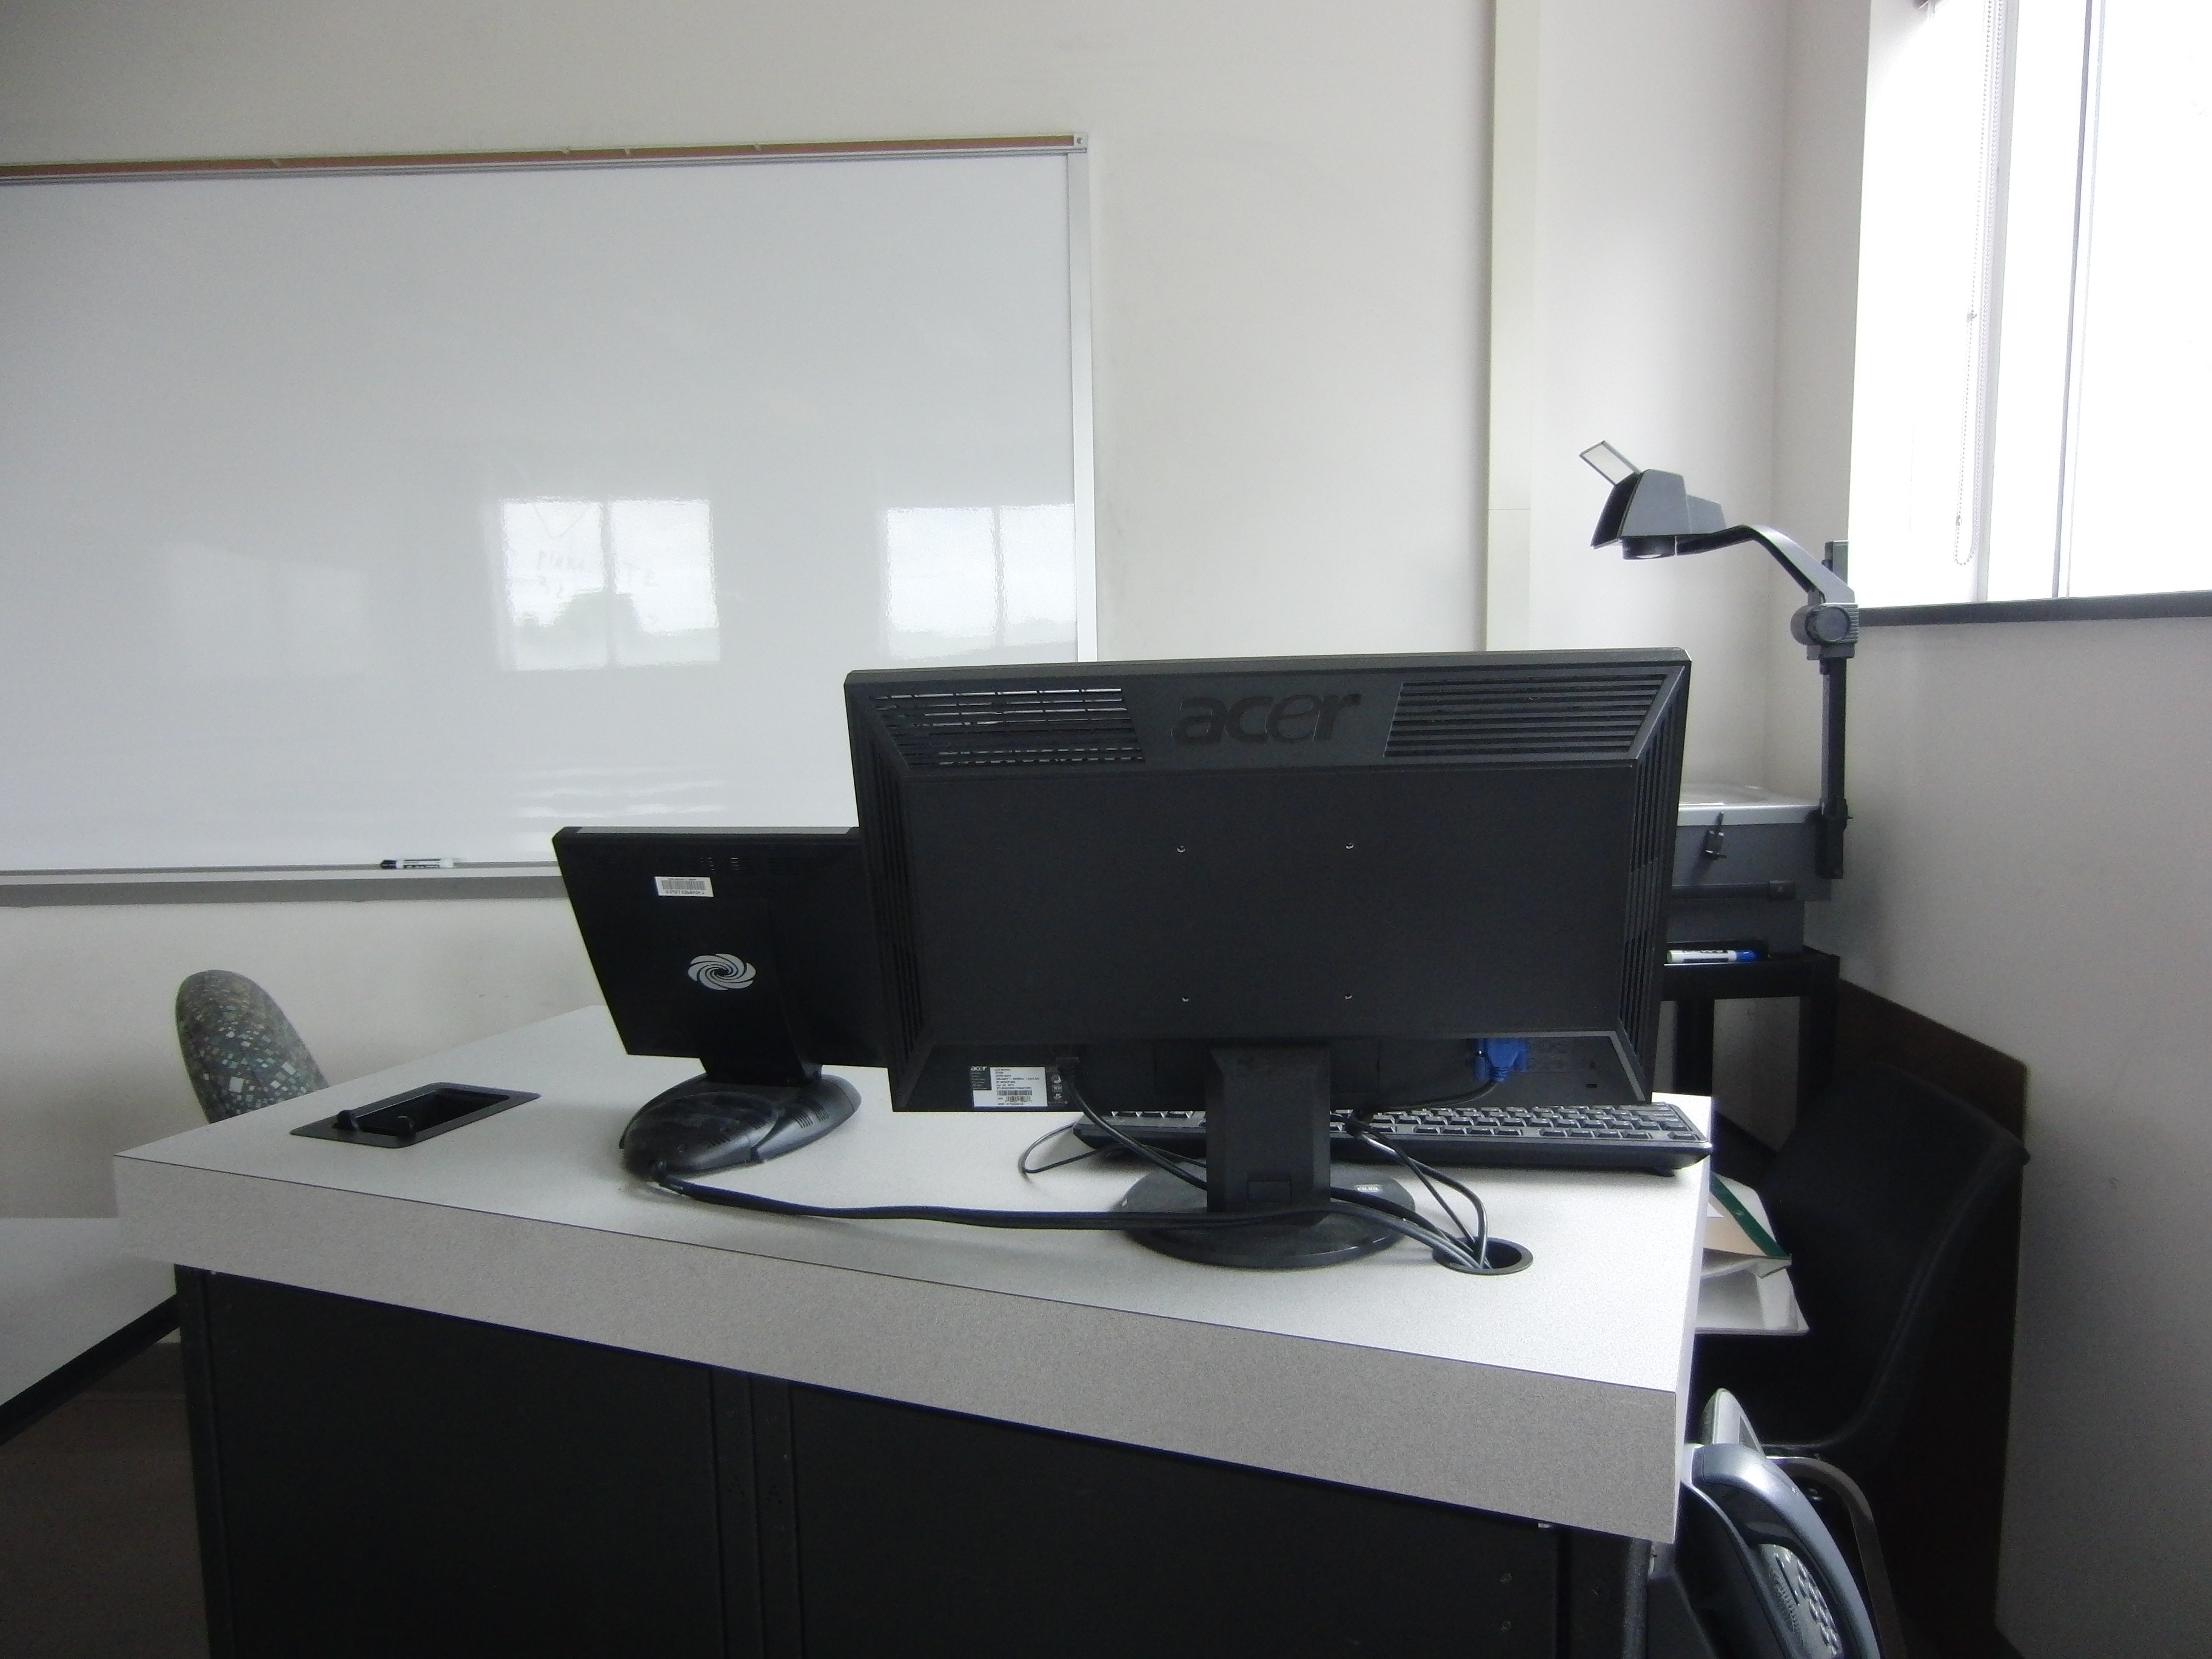 Photo of the back of the instructor station showing the computer monitor, the crestron control touch panel, and a phone